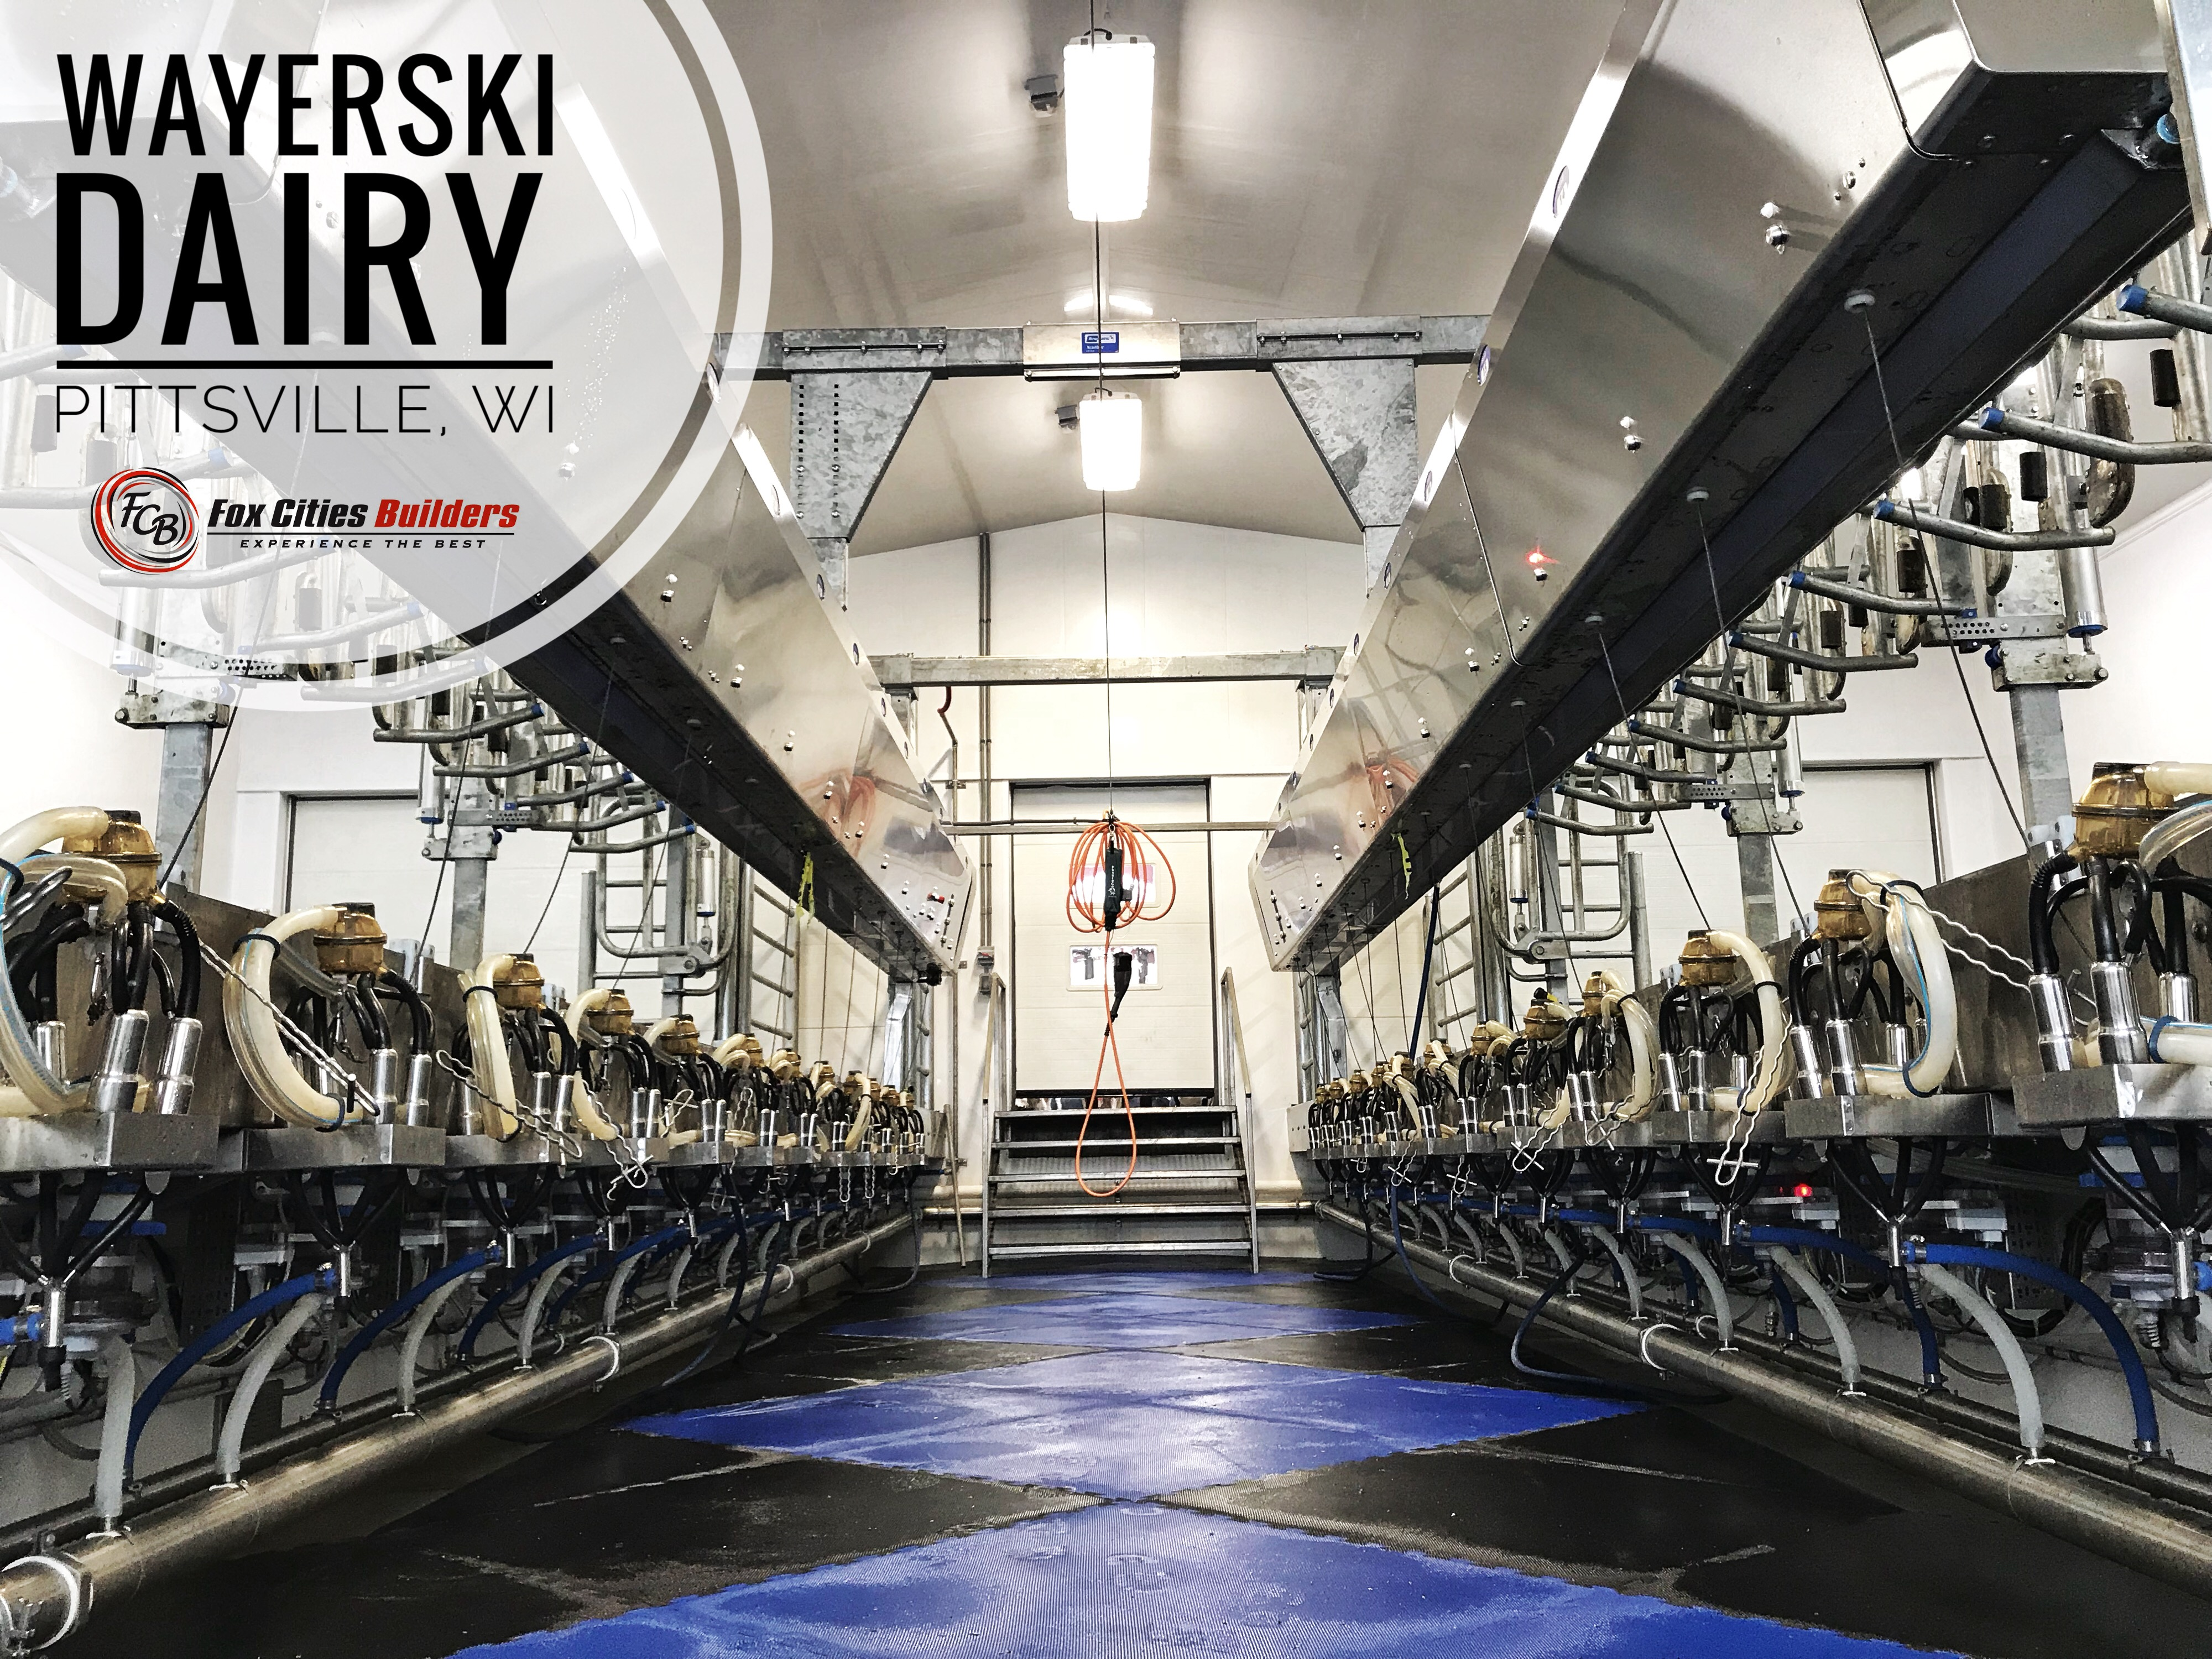 Agricultural Construction:  Milking Parlor:  Wayerski Dairy, Pittsville, WI